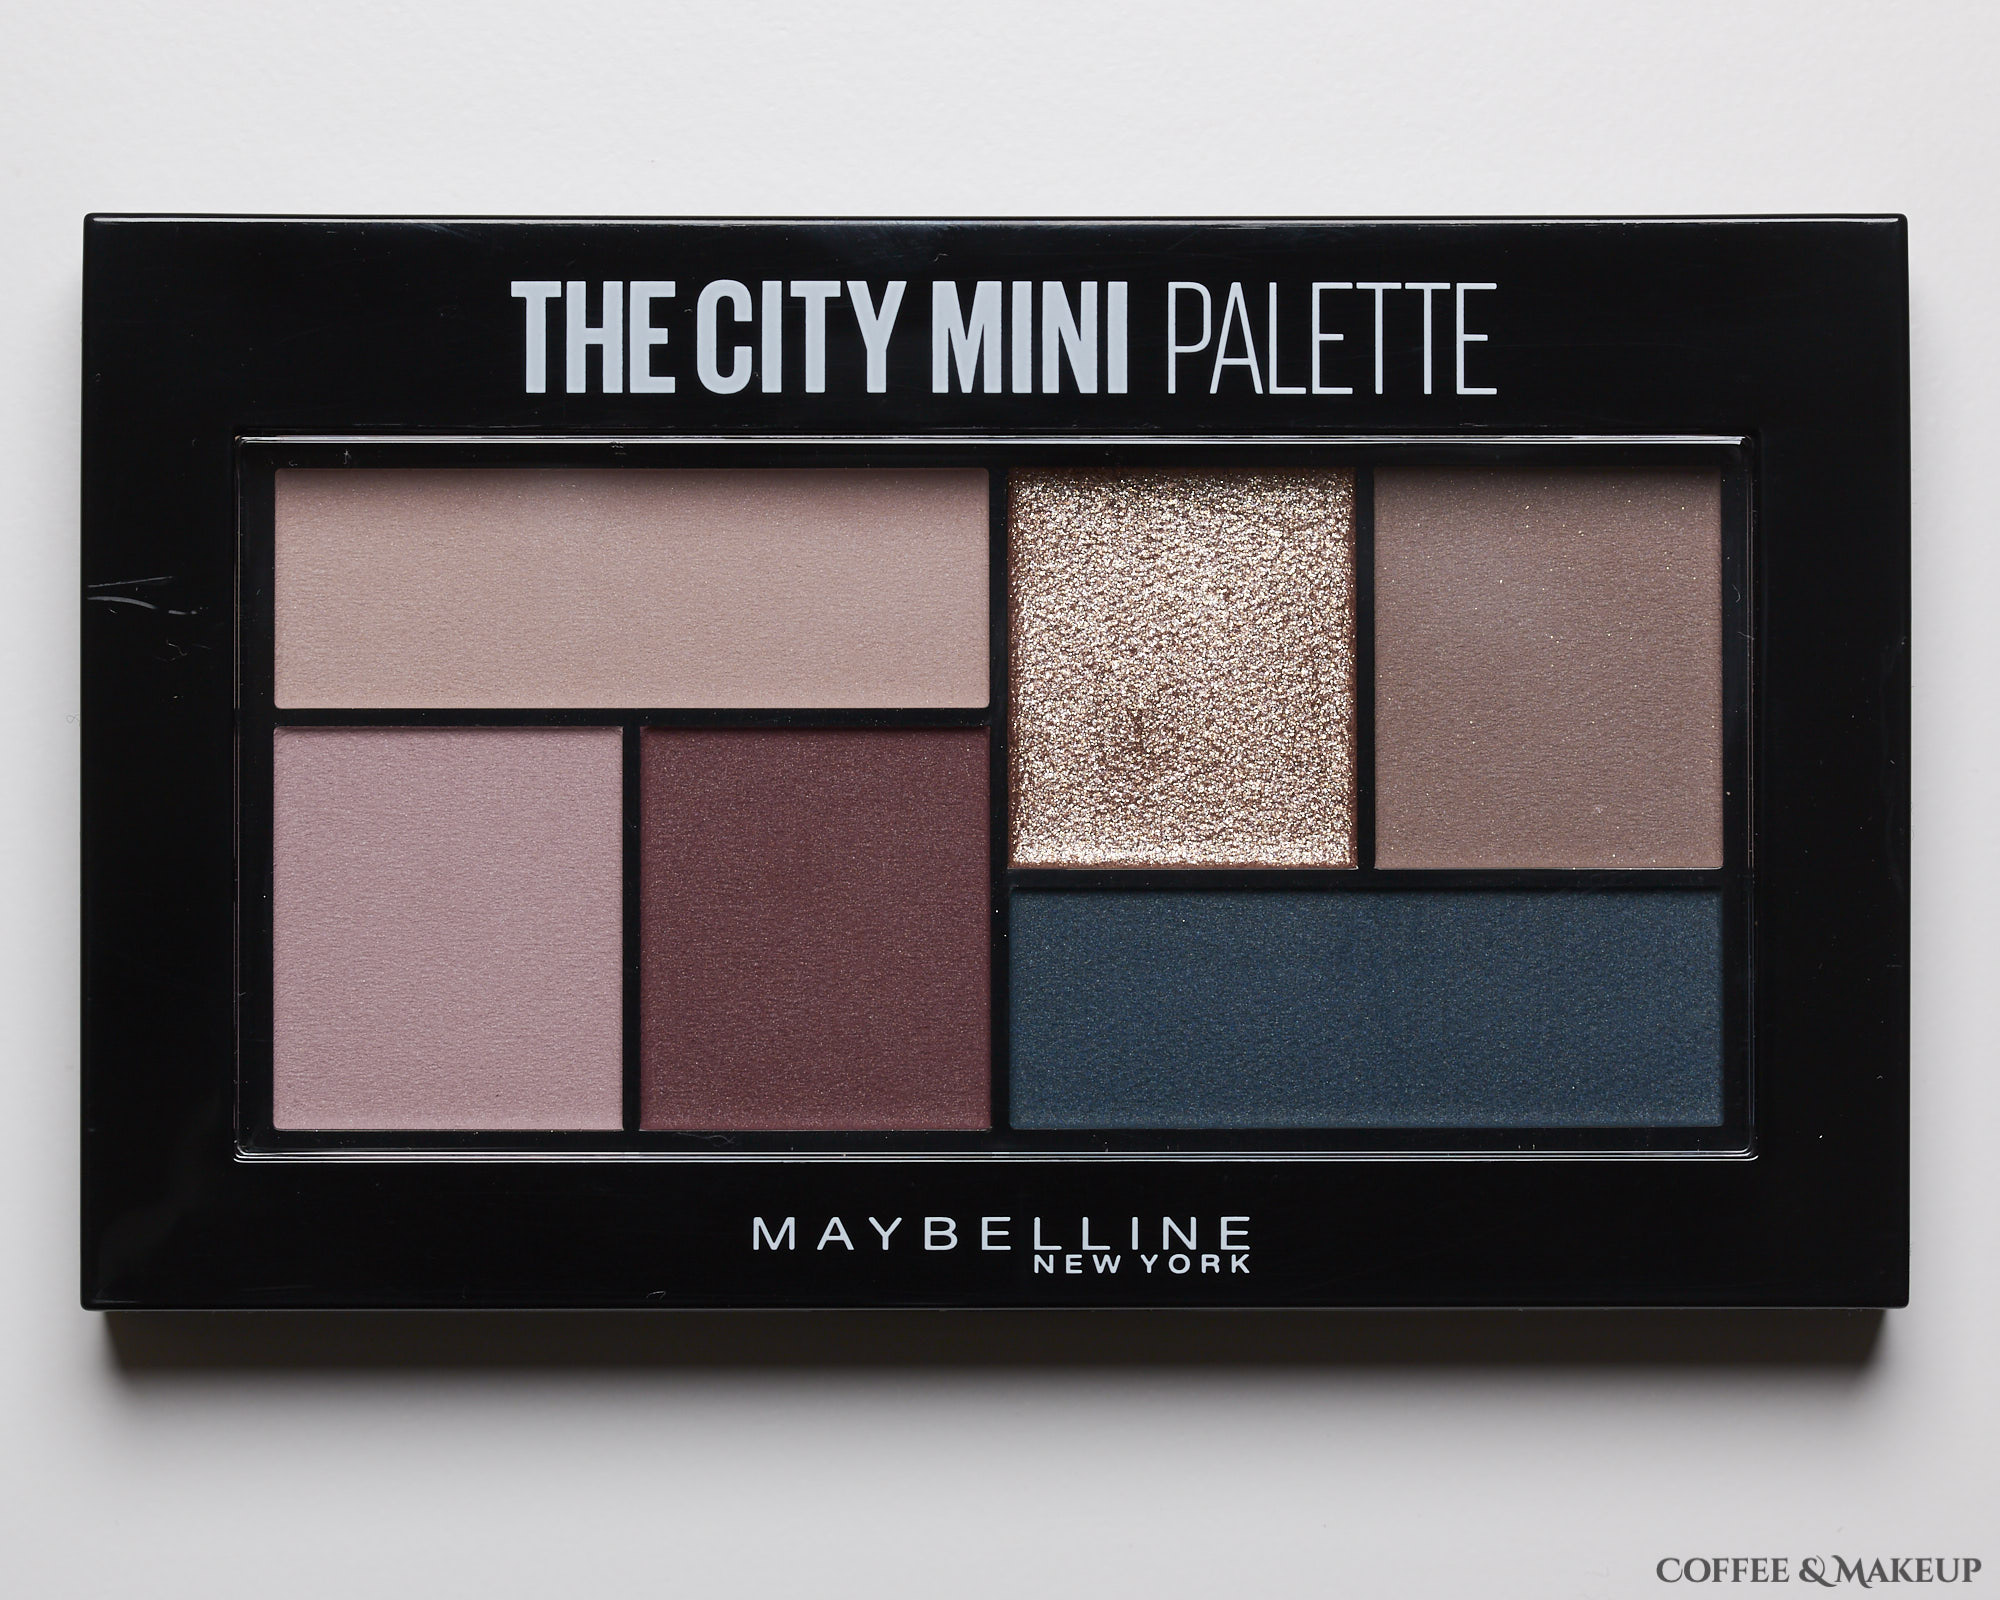 Maybelline Diamond District City Mini Palette